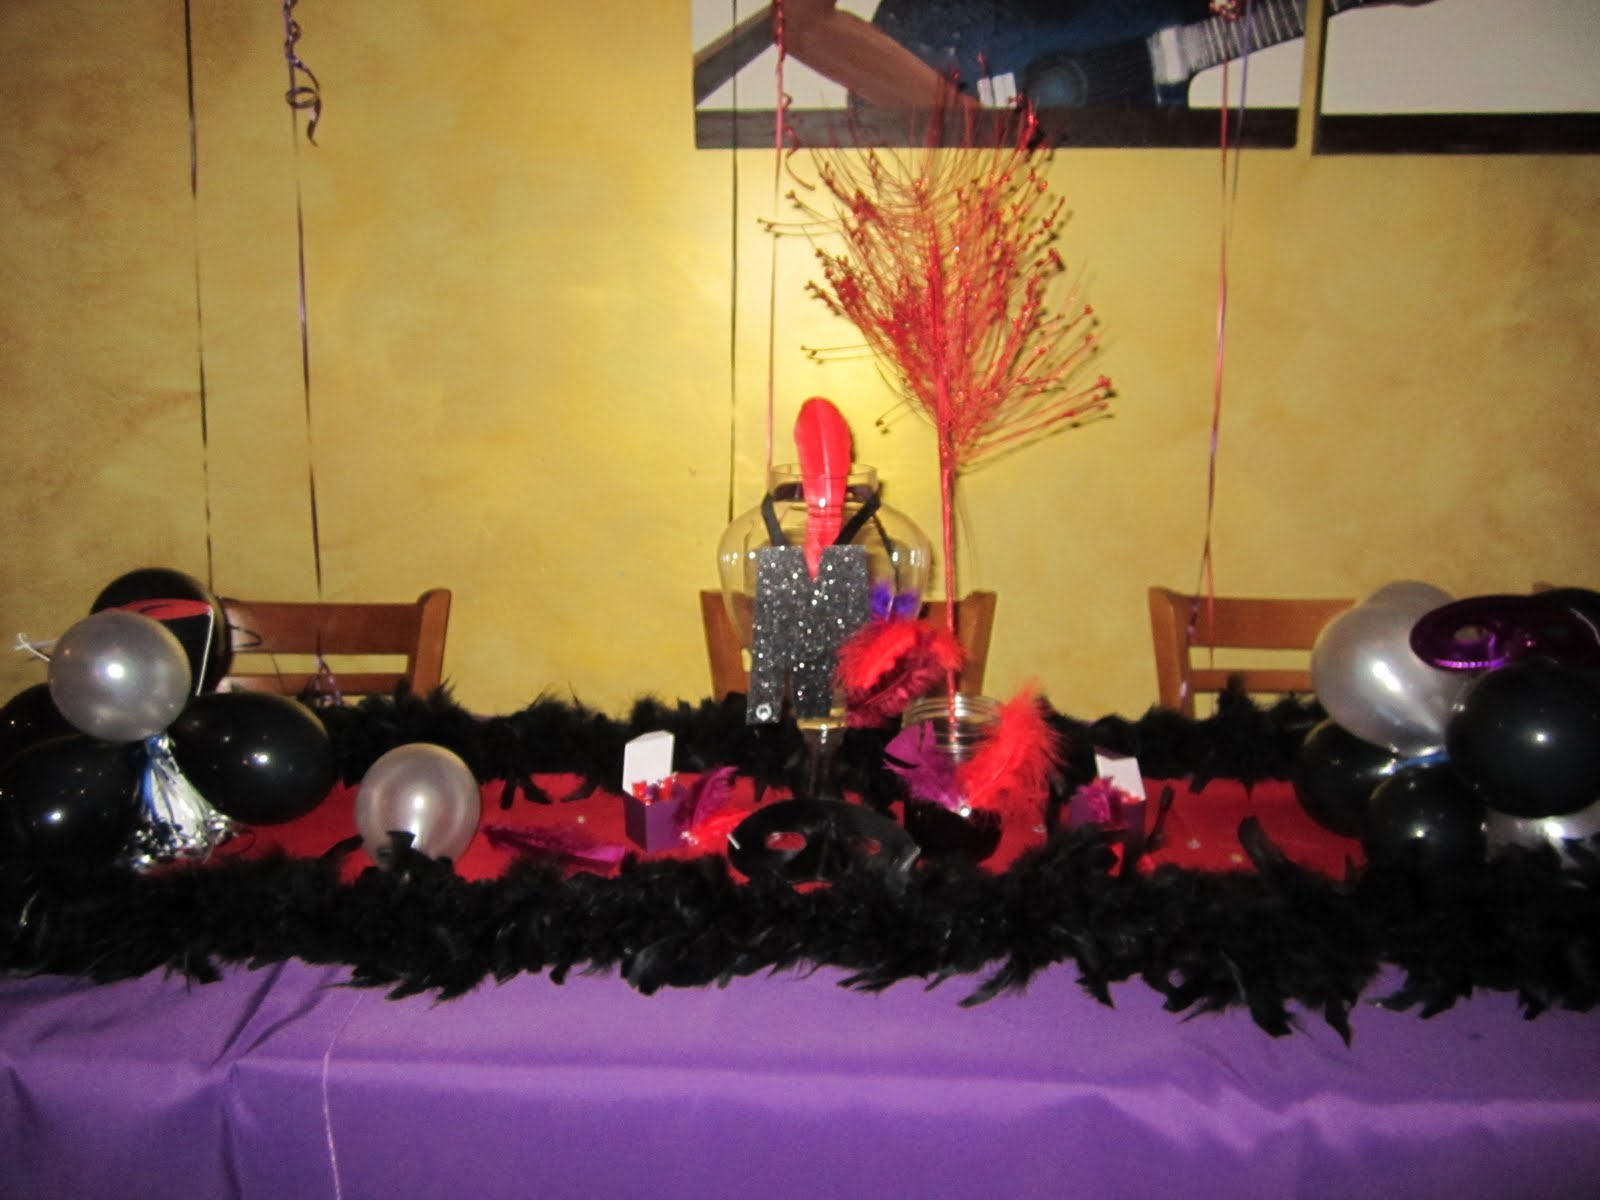 How To Decorate a Birthday Dinner: Red, Purple, & Black theme | My ...